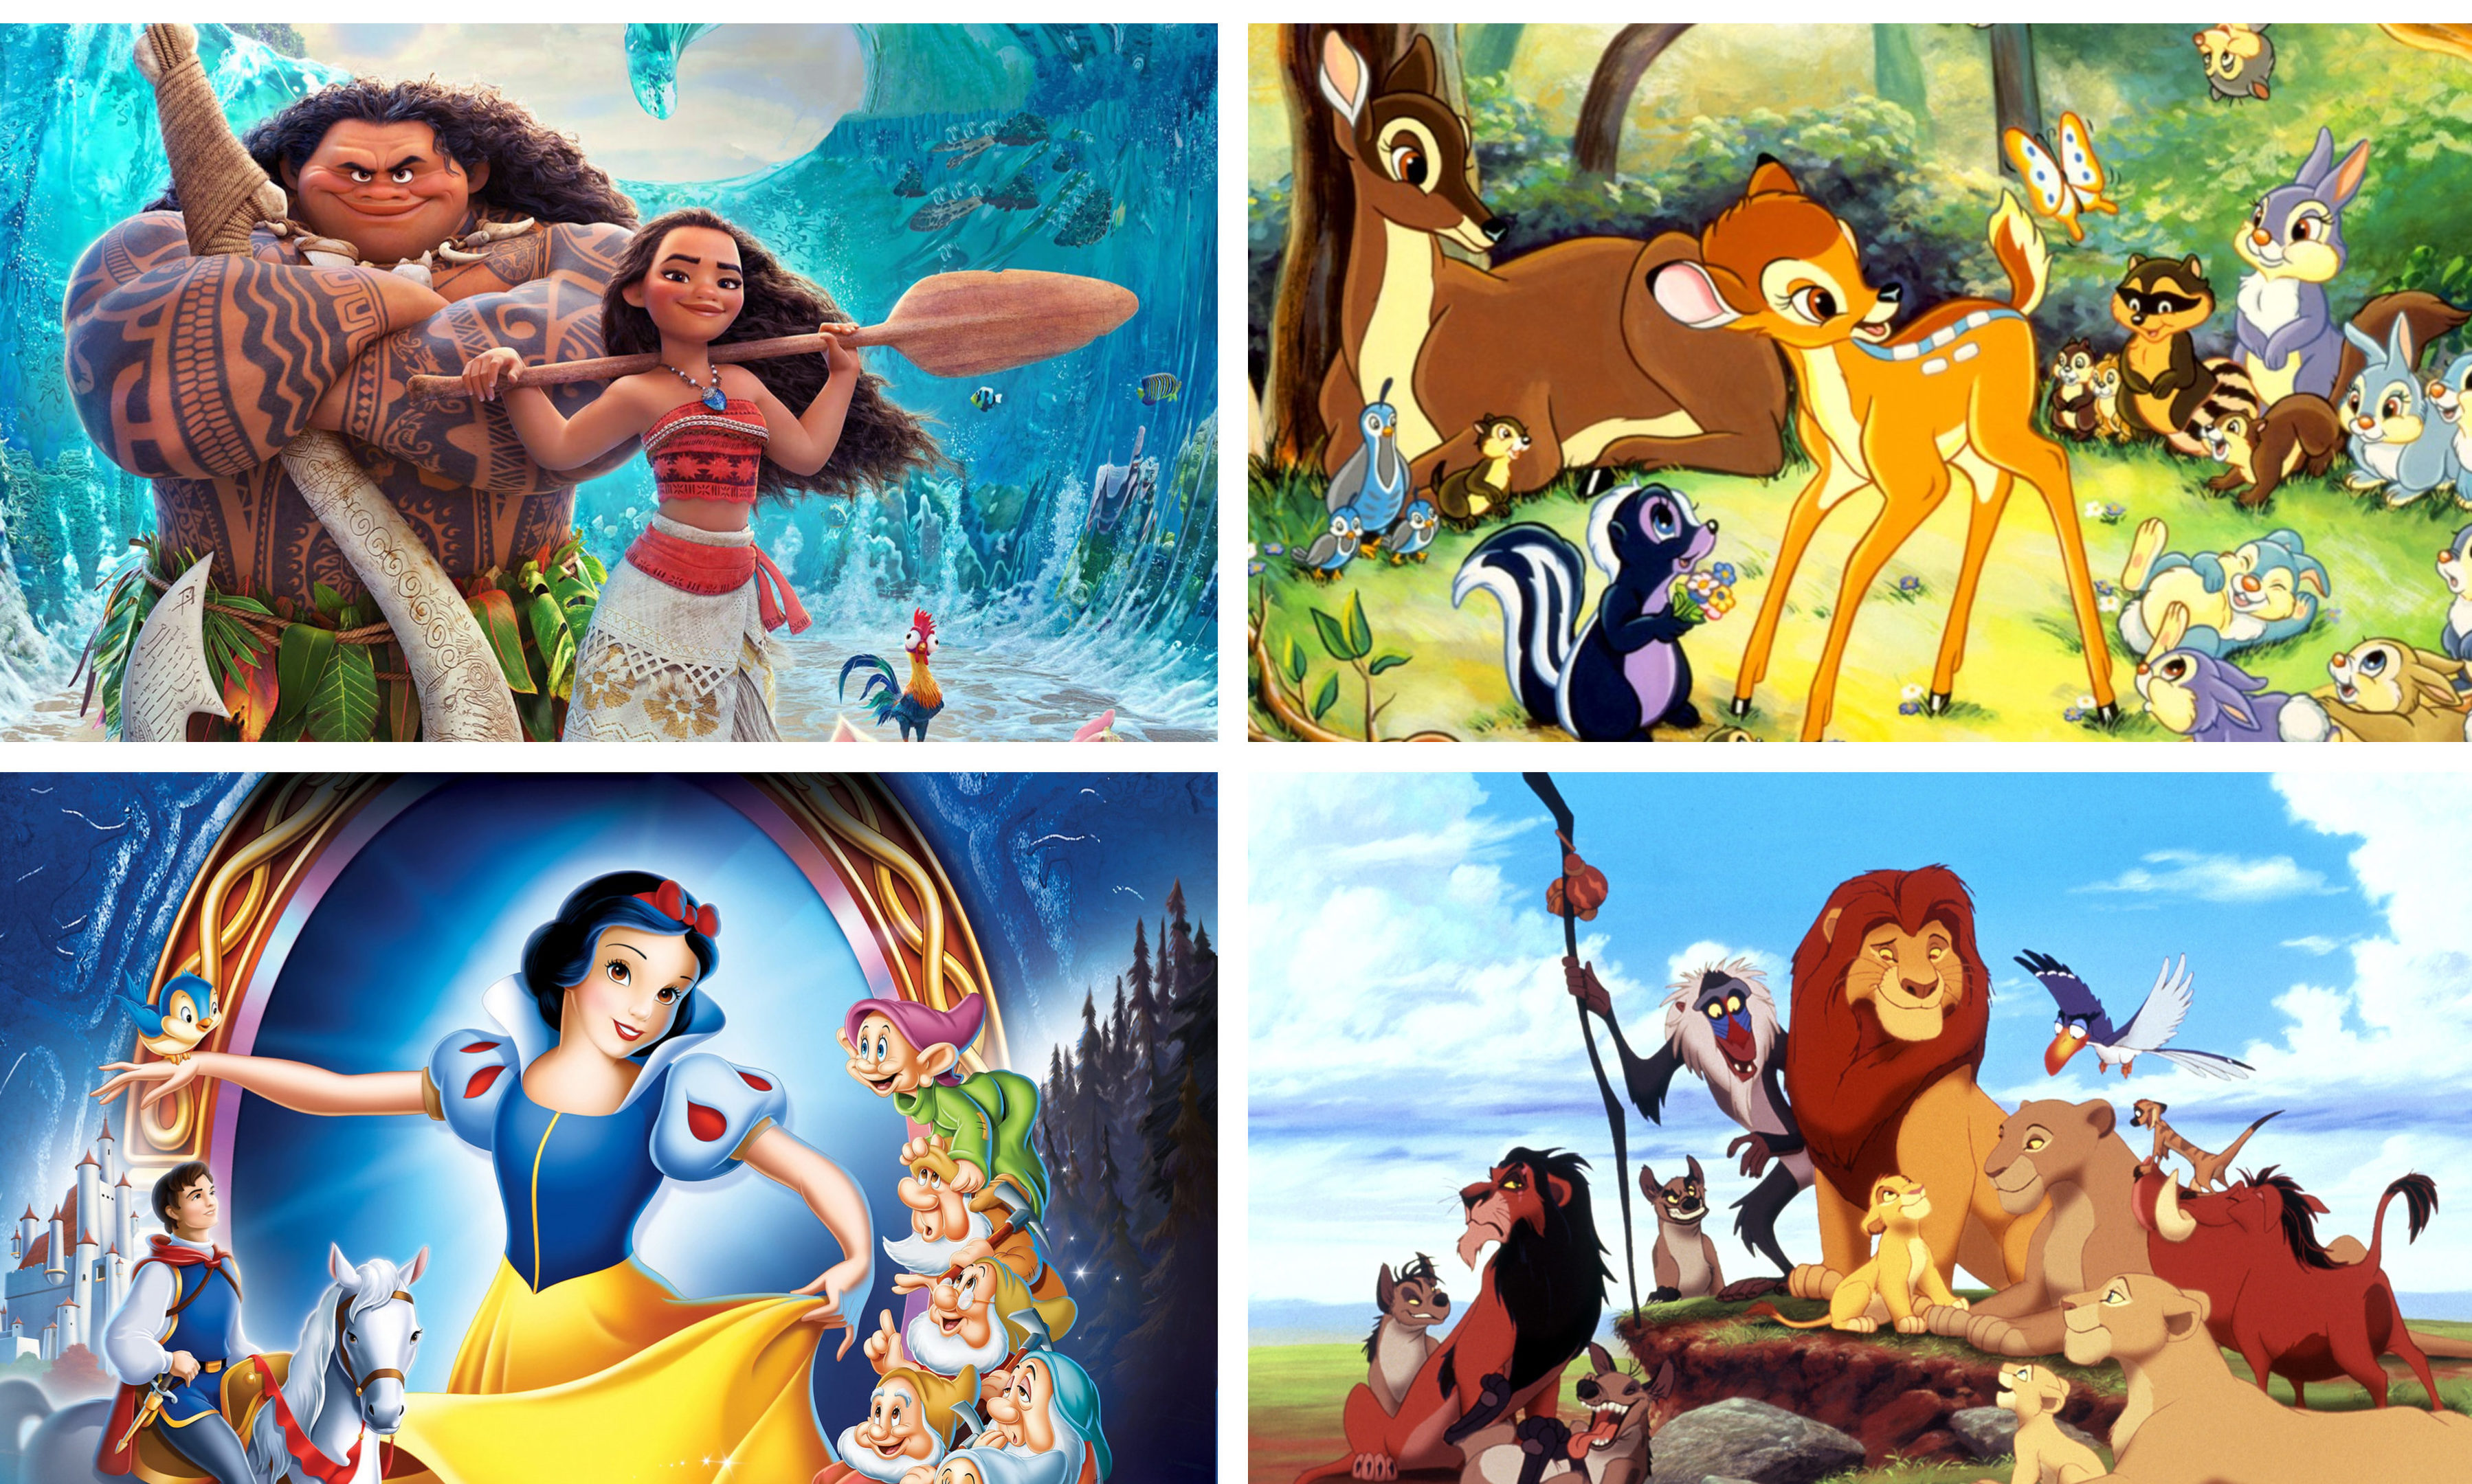 Stills from Disney movies Moana, Bambi, Snow White and the Seven Dwarfs and The Lion King.